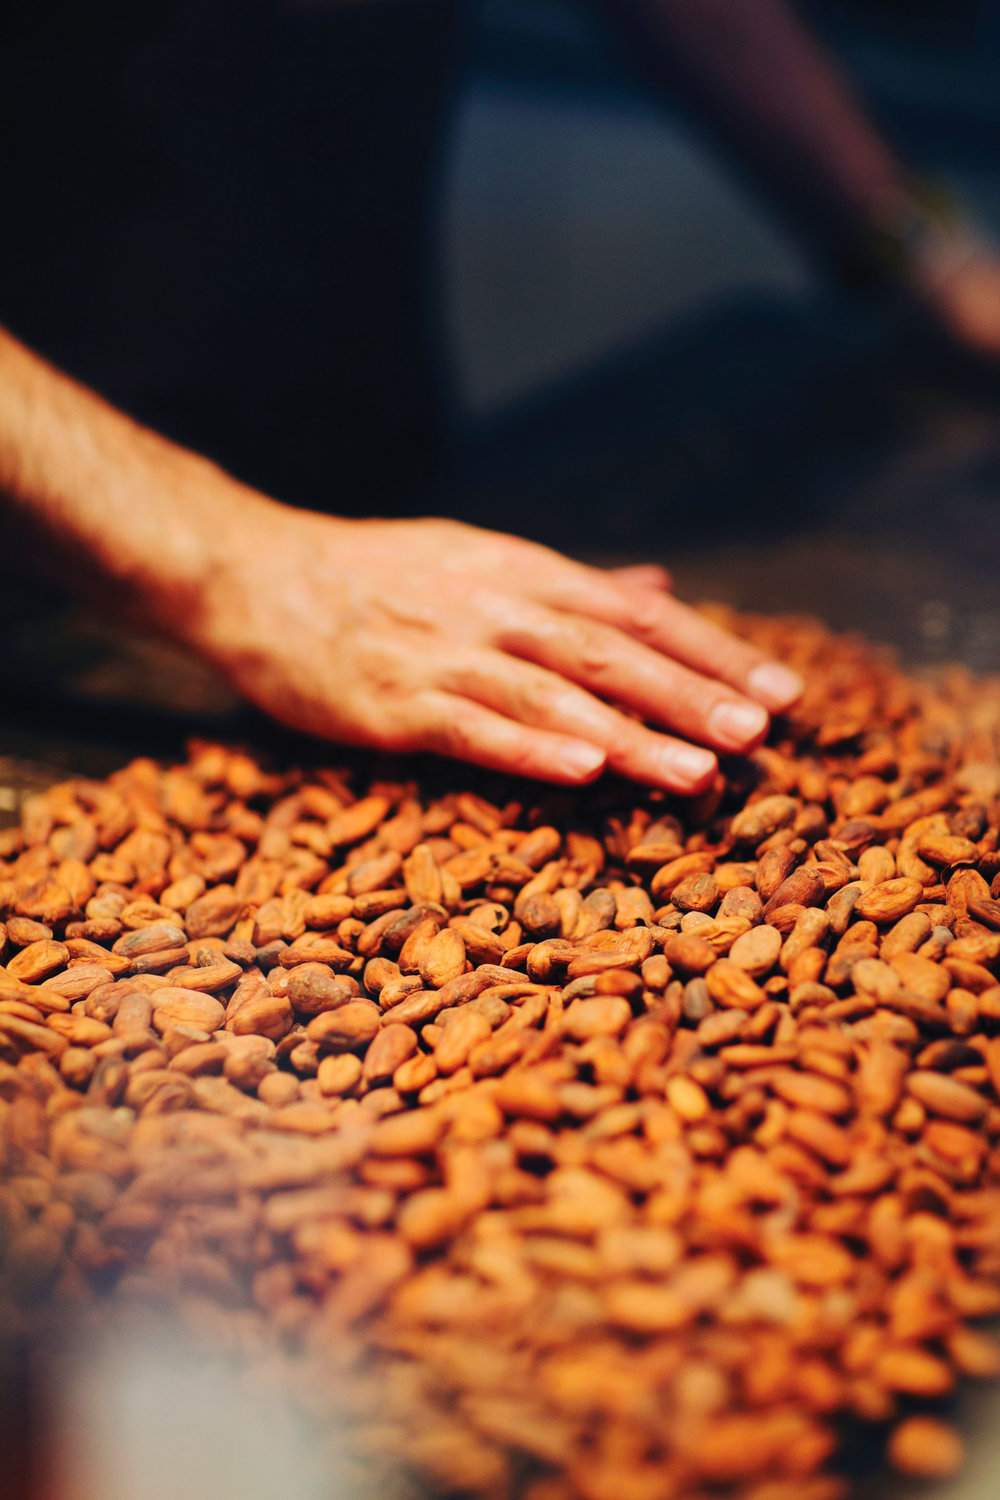 Koko Monk's extraordinary bars and bonbons showcase the best of minimally processed cocoa beans.Photo by Tian Tian